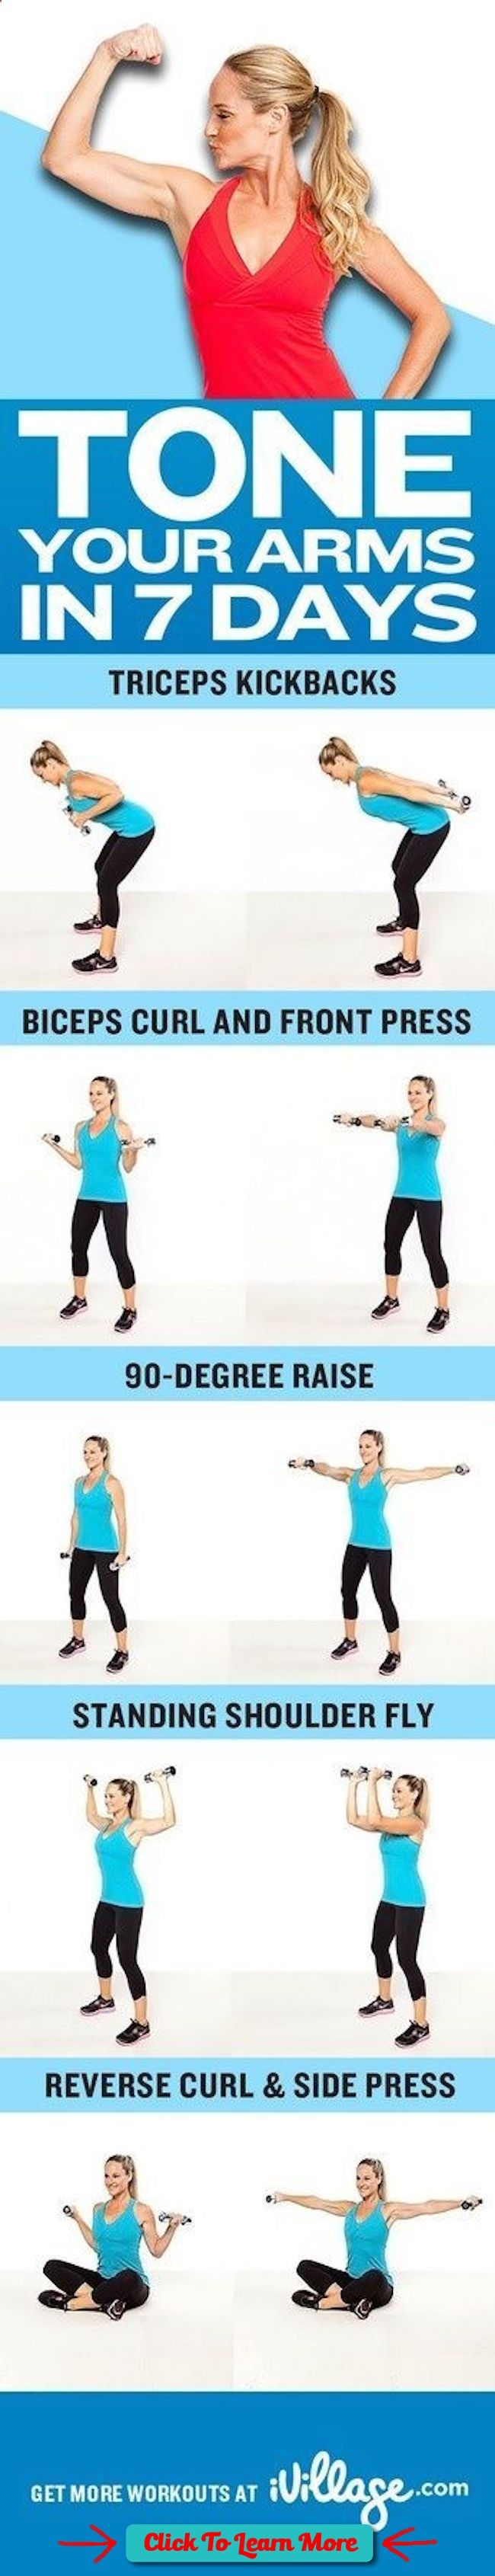 #FastestWayToLoseWeight by EATING, Click to learn more, The 11 Best Bat Wing Banishing Workouts - Tone Your Arms in 7 Days , #HealthyRecipes, #FitnessRecipes, #BurnFatRecipes, #WeightLossRecipes, #WeightLossDiets